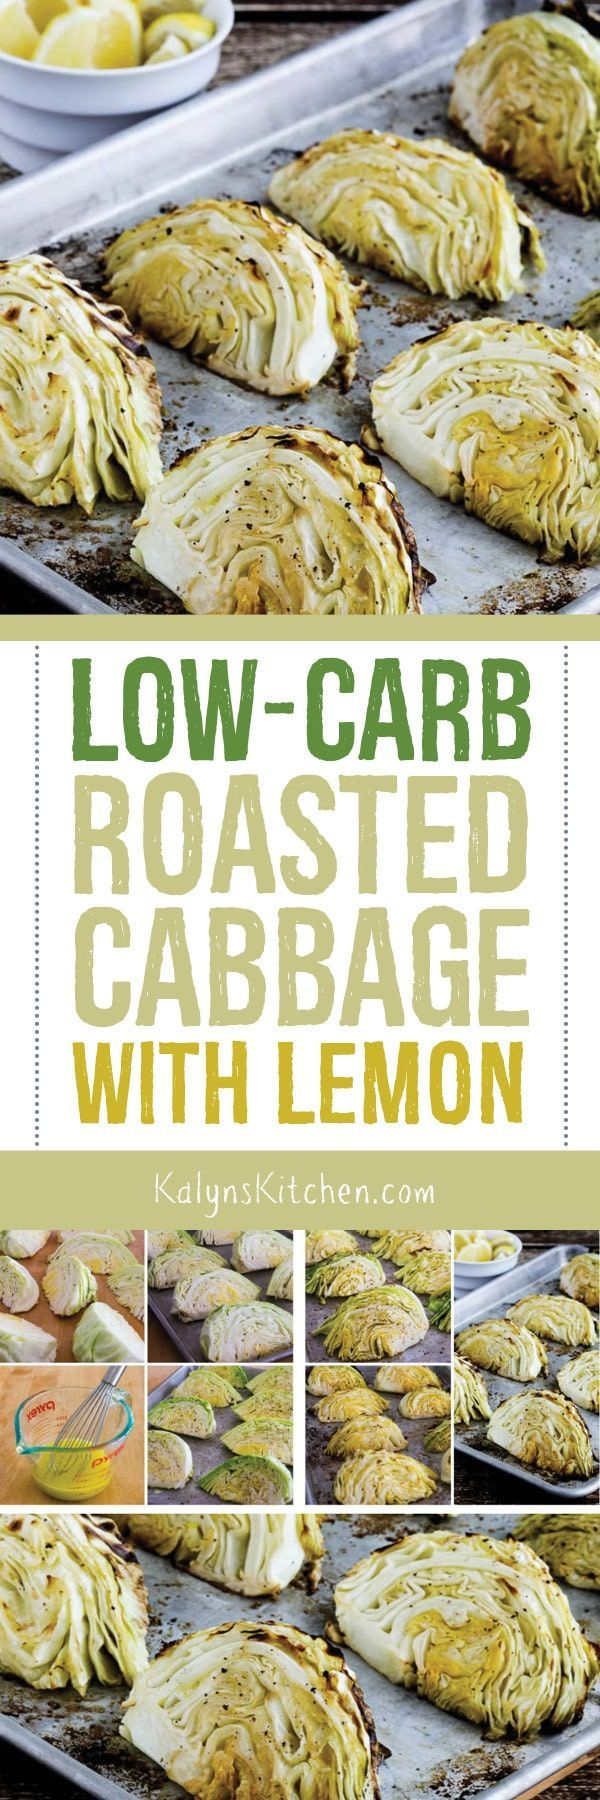 Low-Carb Roasted Cabbage with Lemon (Video)